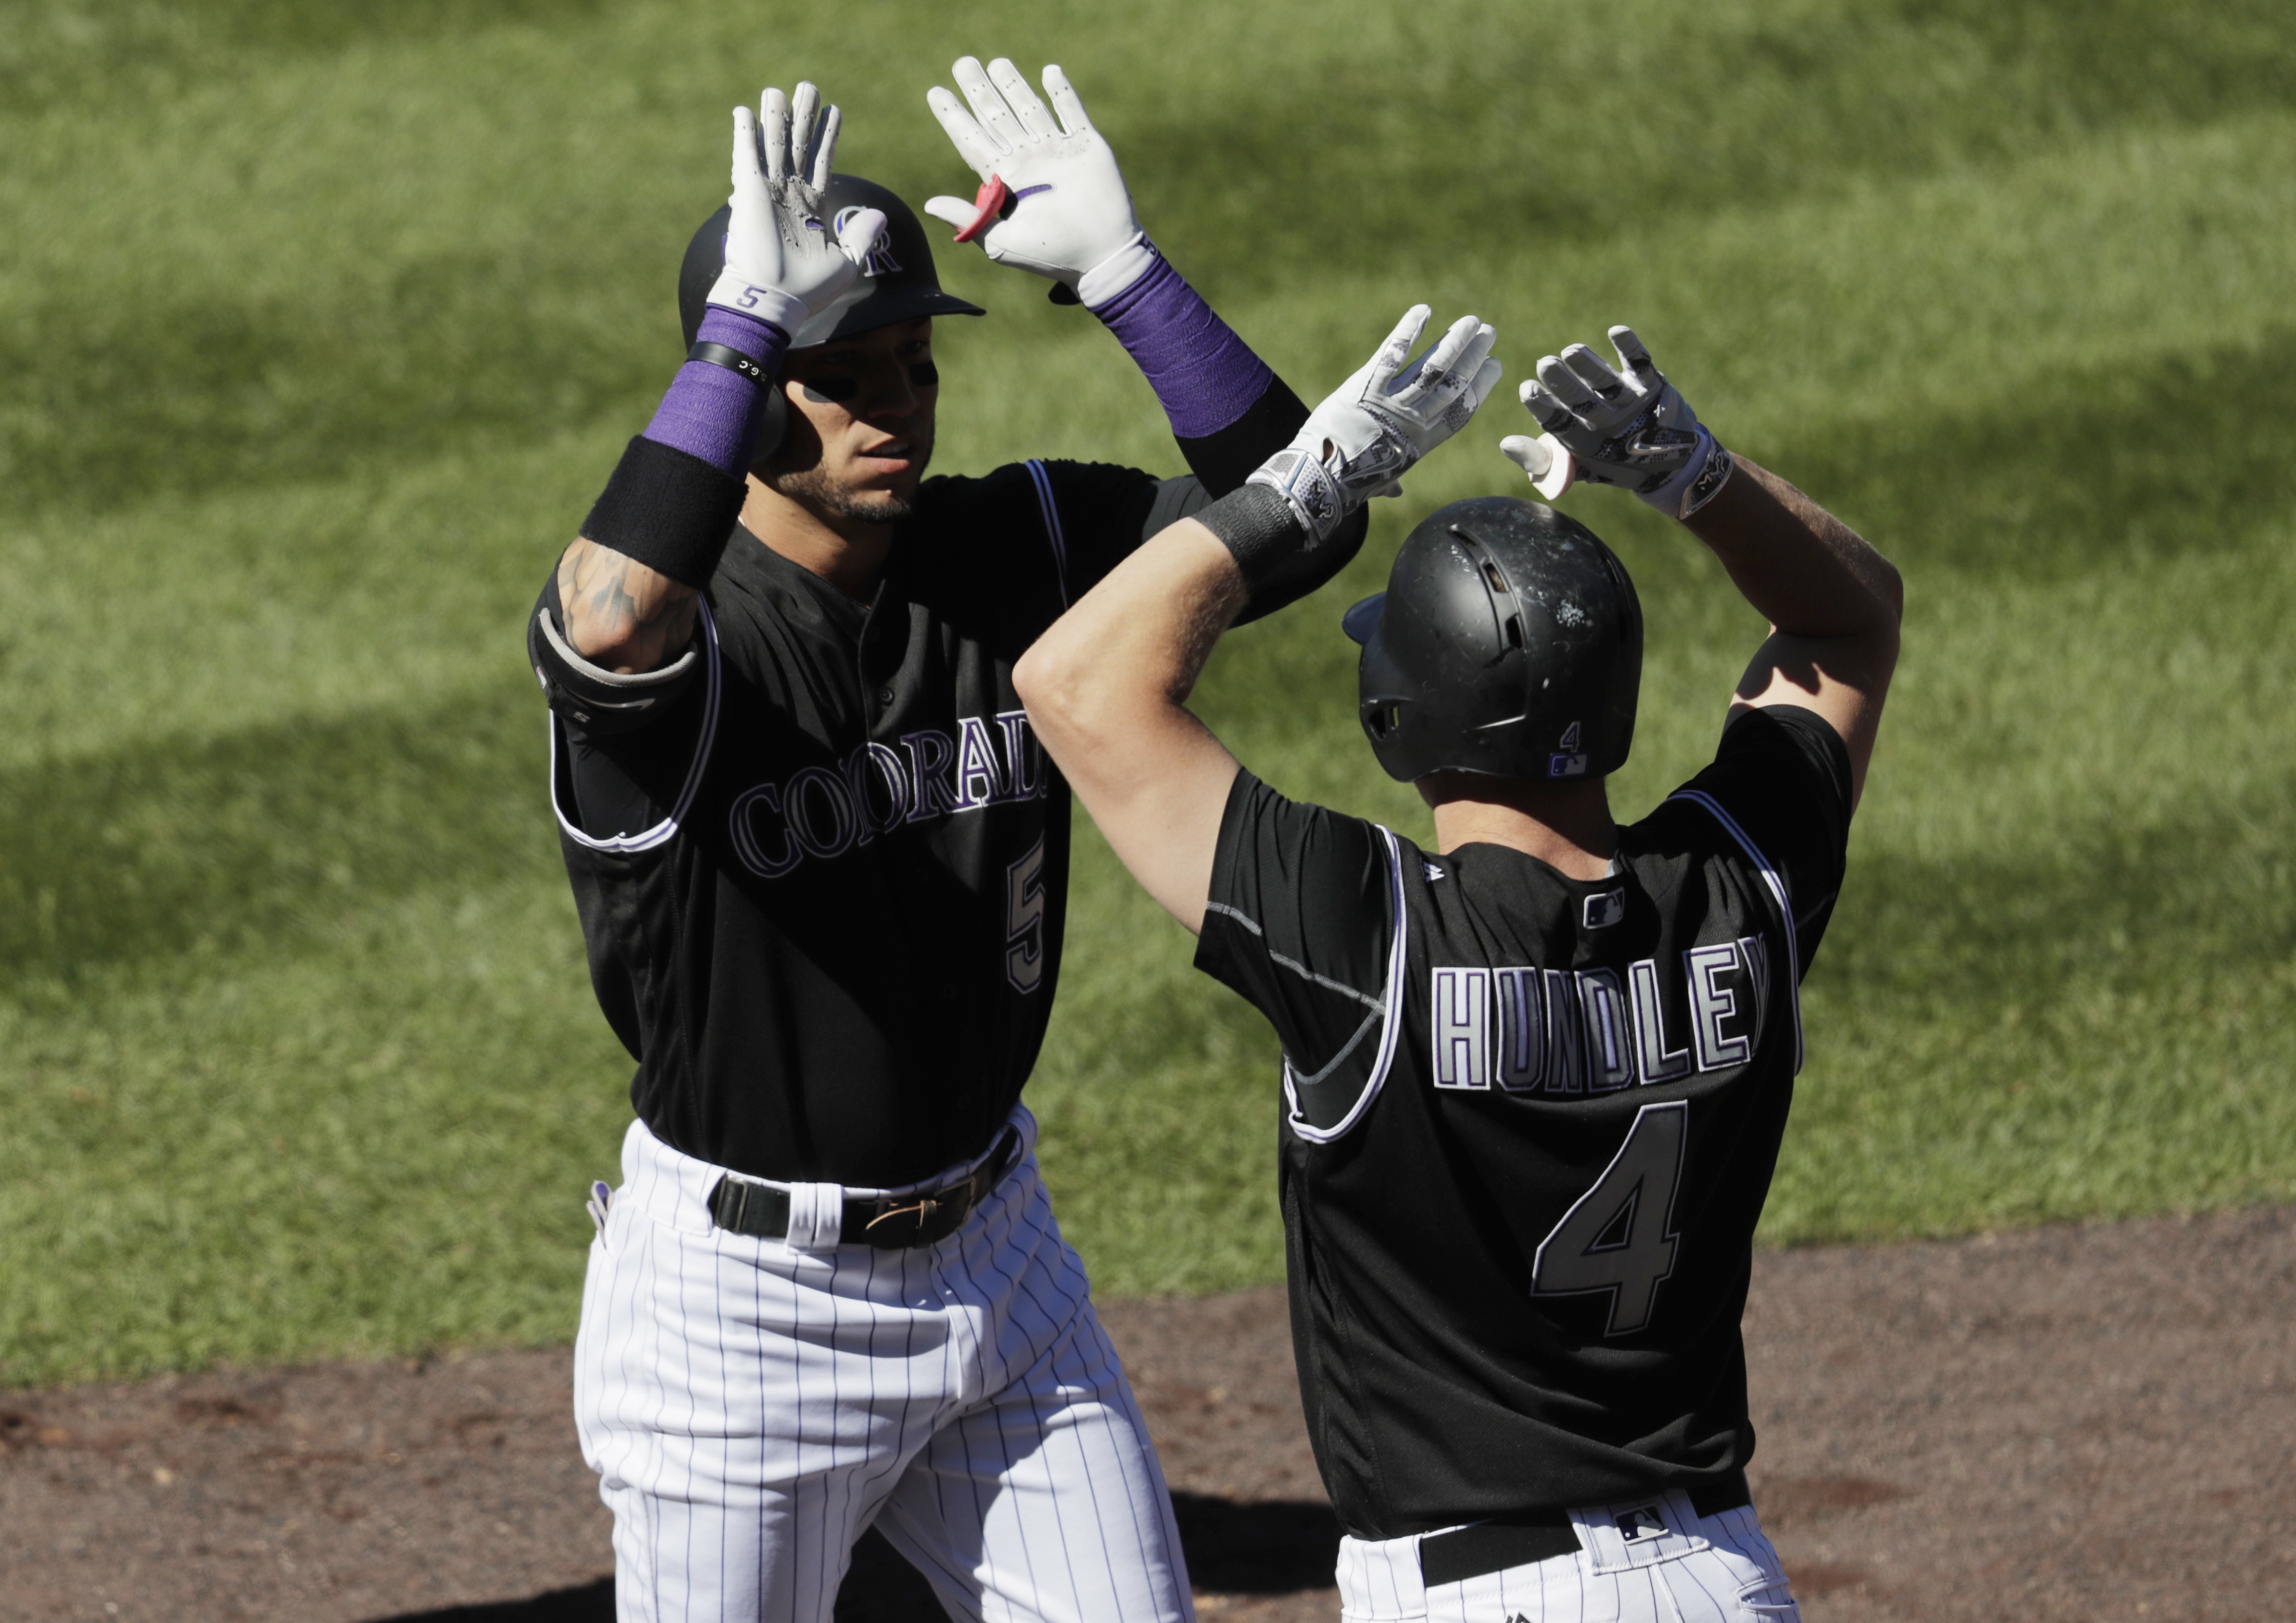 Colorado Rockies' Carlos Gonzalez, left, is congratulated by Nick Hundley after Gonzalez hit a grand slam off San Francisco Giants starting pitcher Matt Moore during the third inning of a baseball game Monday, Sept. 5, 2016, in Denver. (AP Photo/David Zal